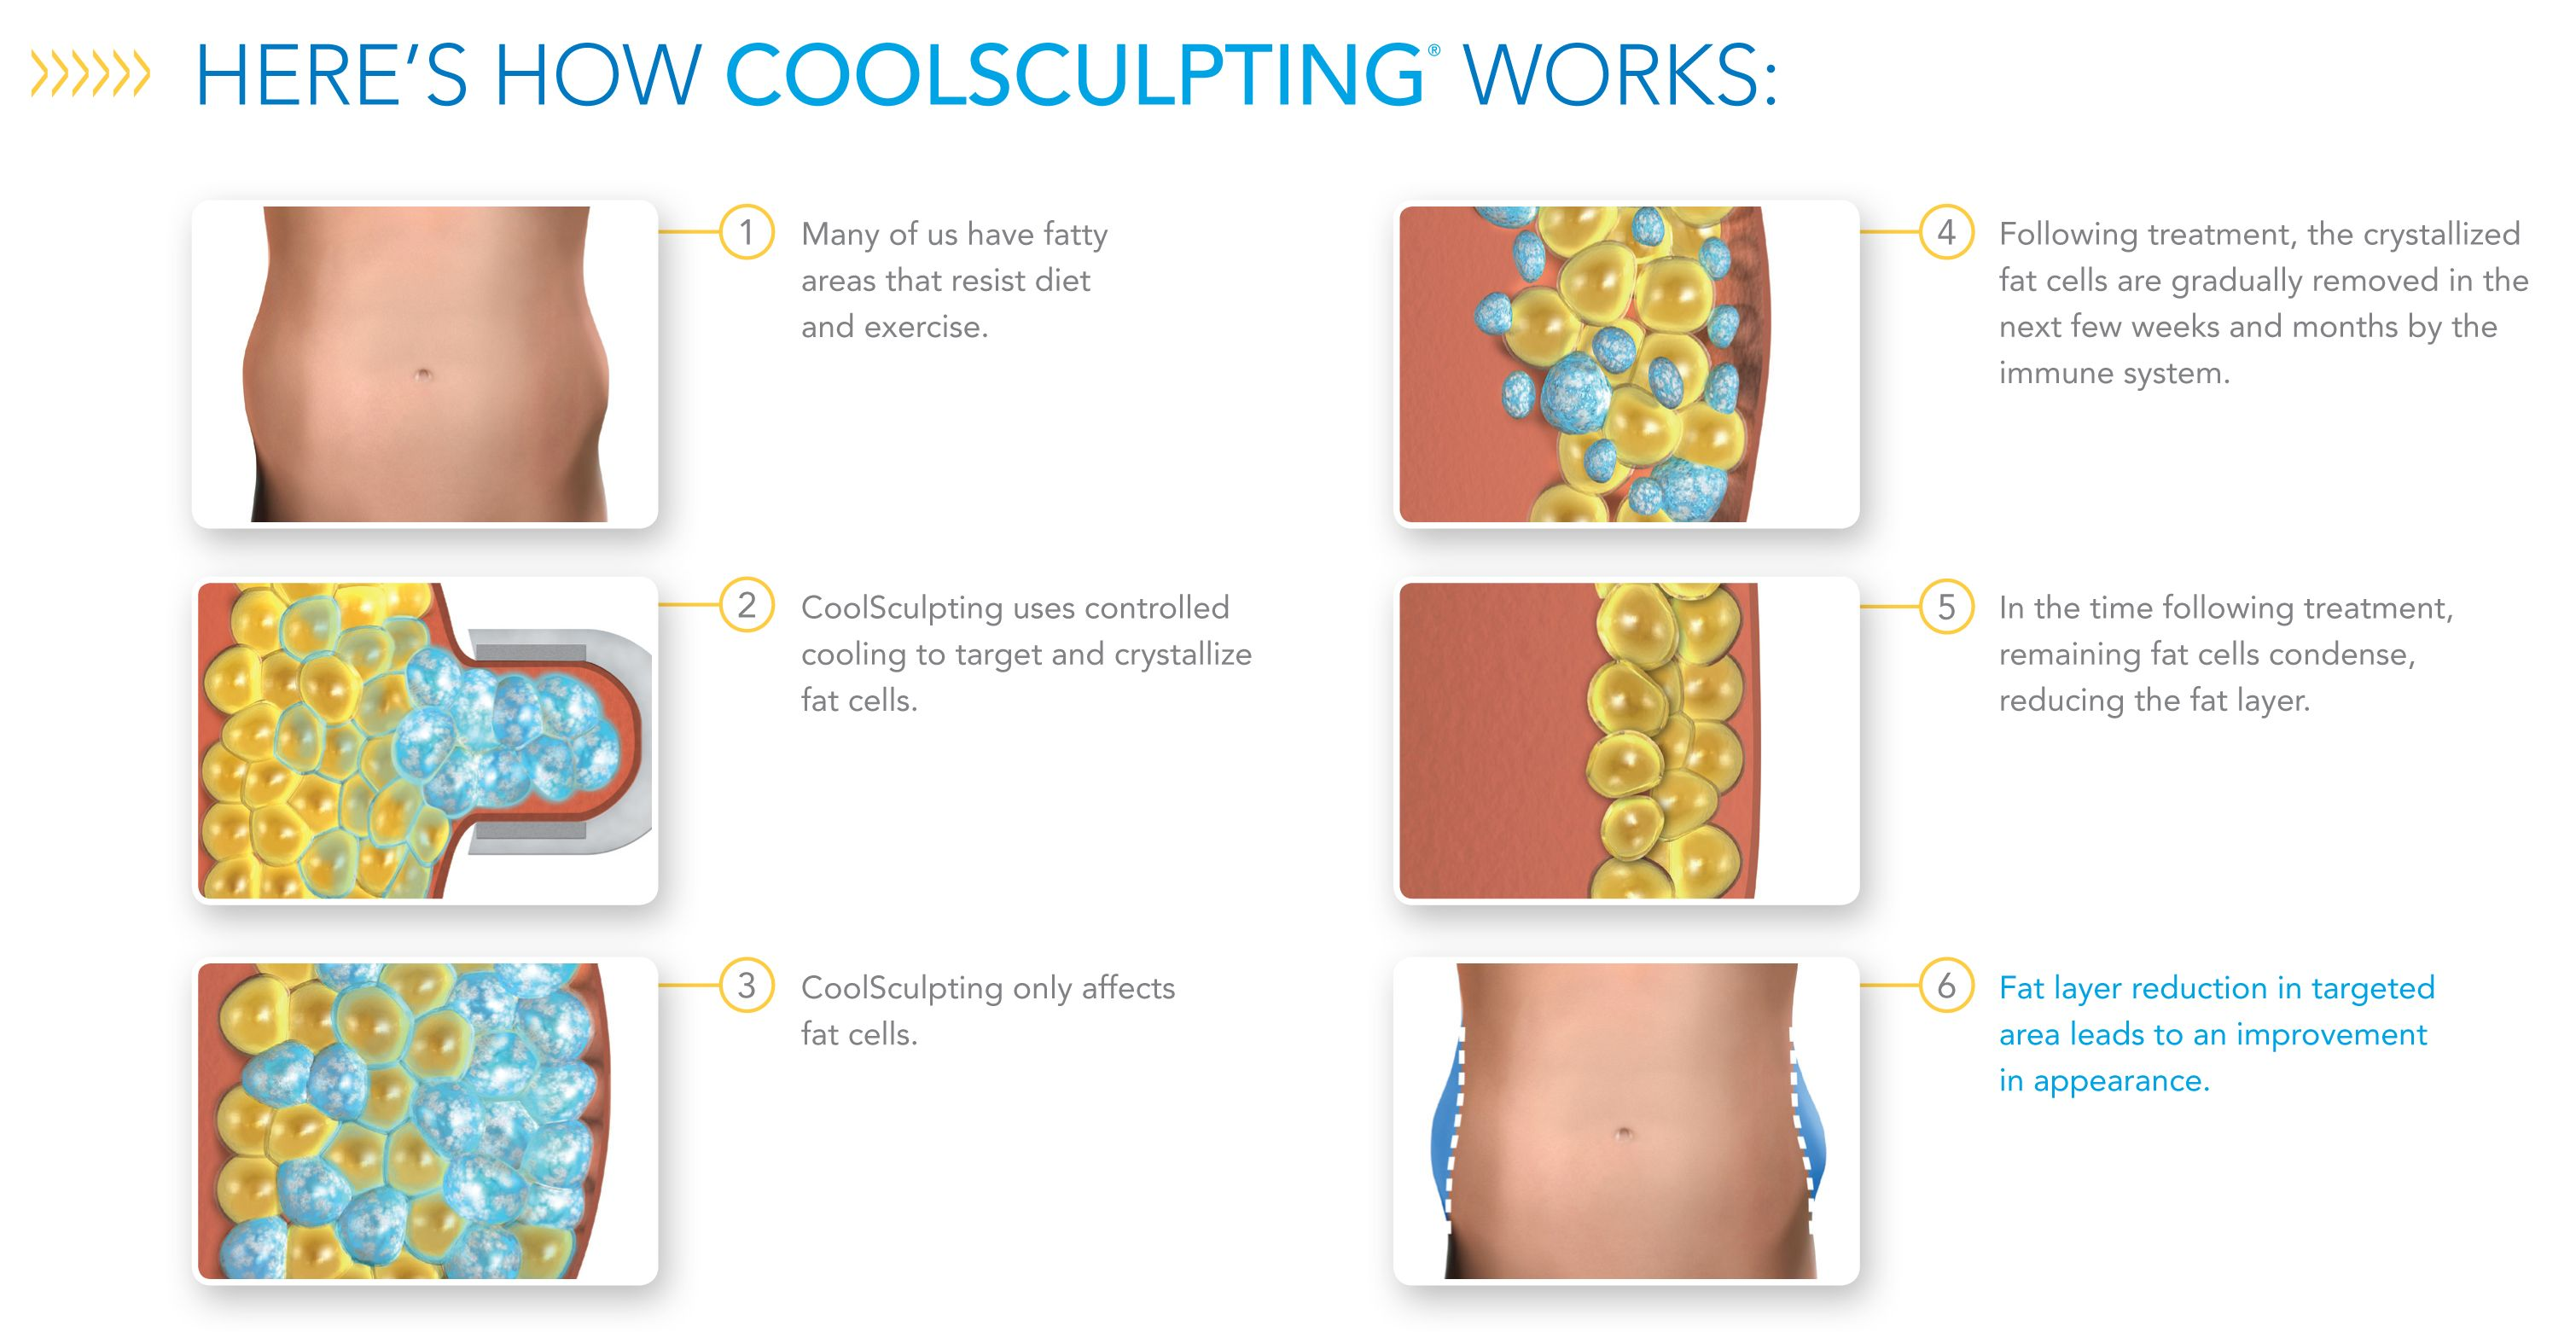 How-CoolSculpting-Works.jpg